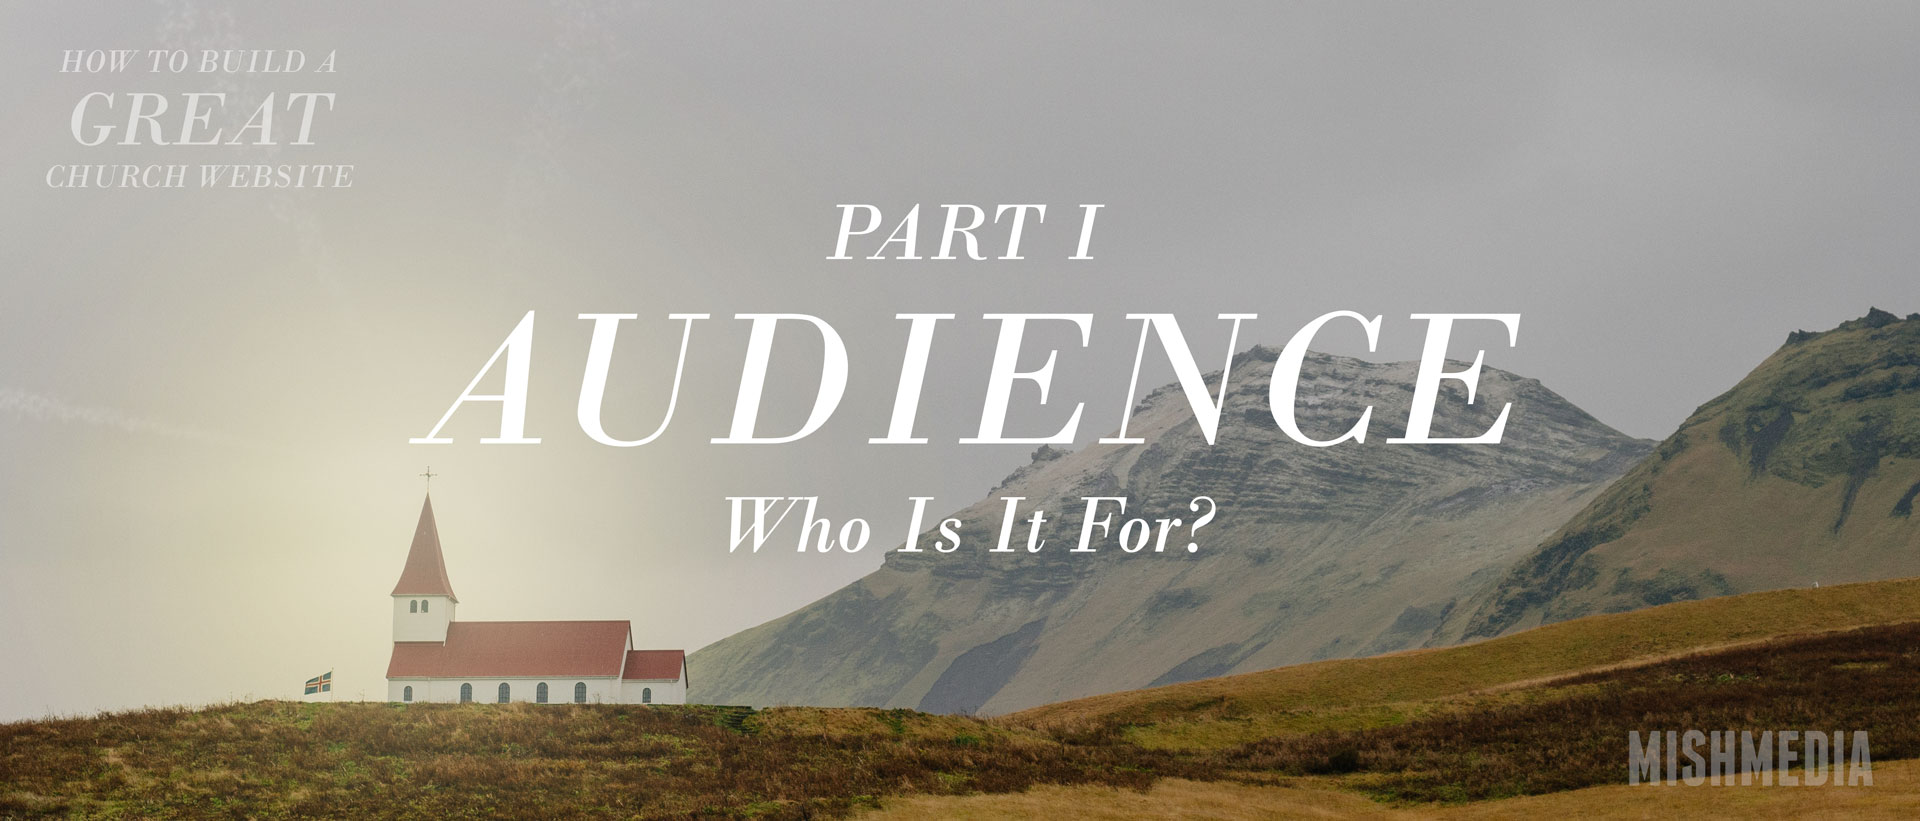 How To Build A Great Church Website - Part 1: Audience